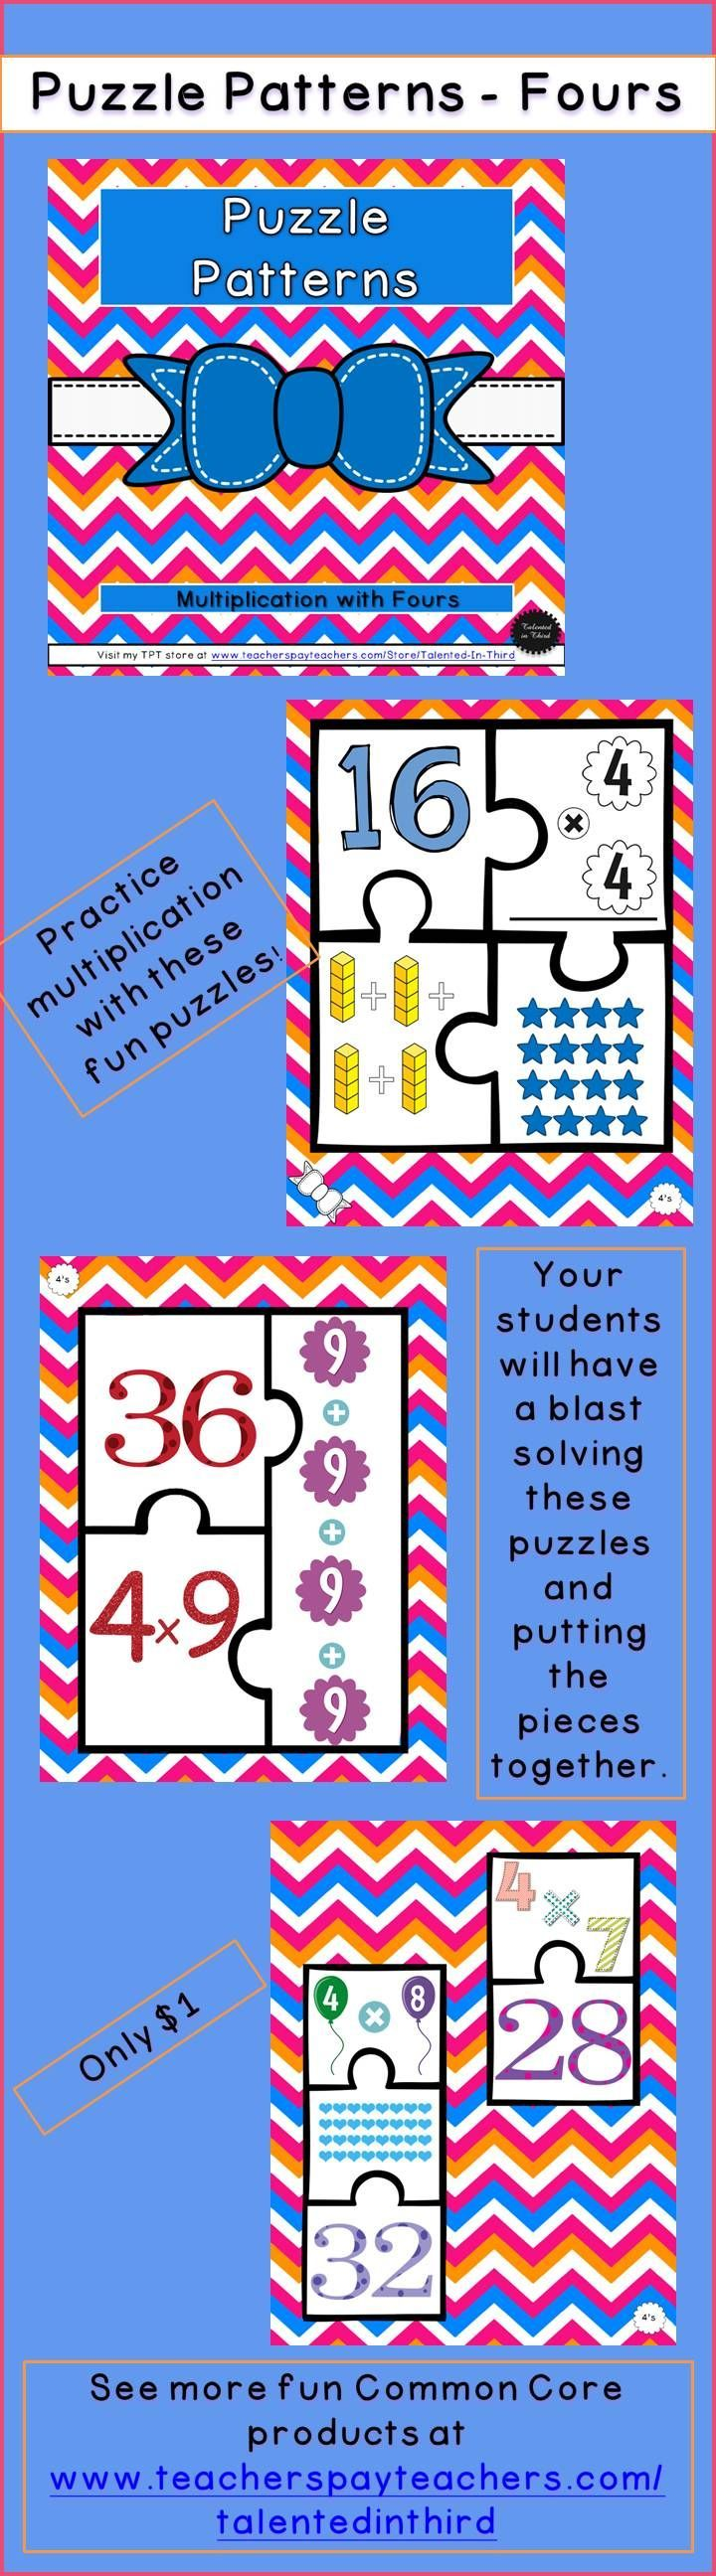 Enjoy this fun way to practice multiplication, with fun interactive puzzles that can be used as a whole class, small group, or enrichment activity.   Practice Common Core Math Skills with these printable puzzles. Great for fourth or fifth grade students who are reviewing multiplication or third grade students who need more practice in understanding different ways to represent a multiplication fact (arrays, equation, total).